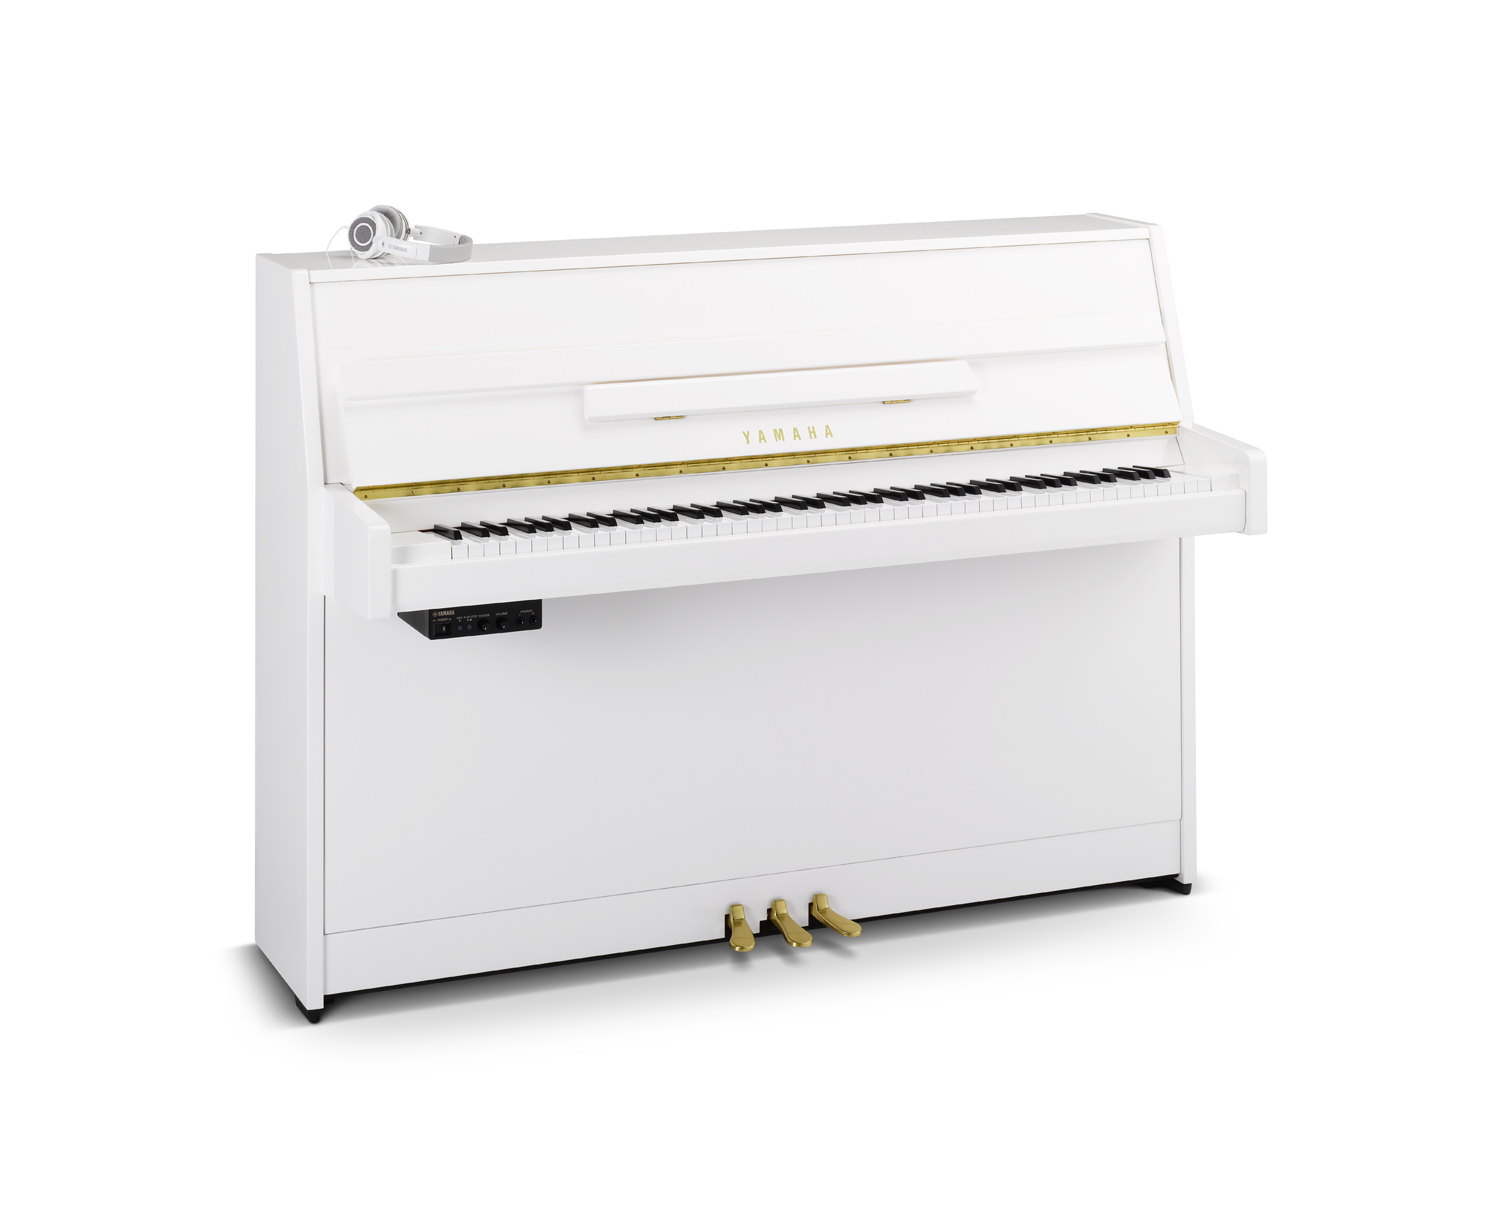 Yamaha B1 Sg2 Silent Piano In Polished White Finish With Brass Parts Diagram